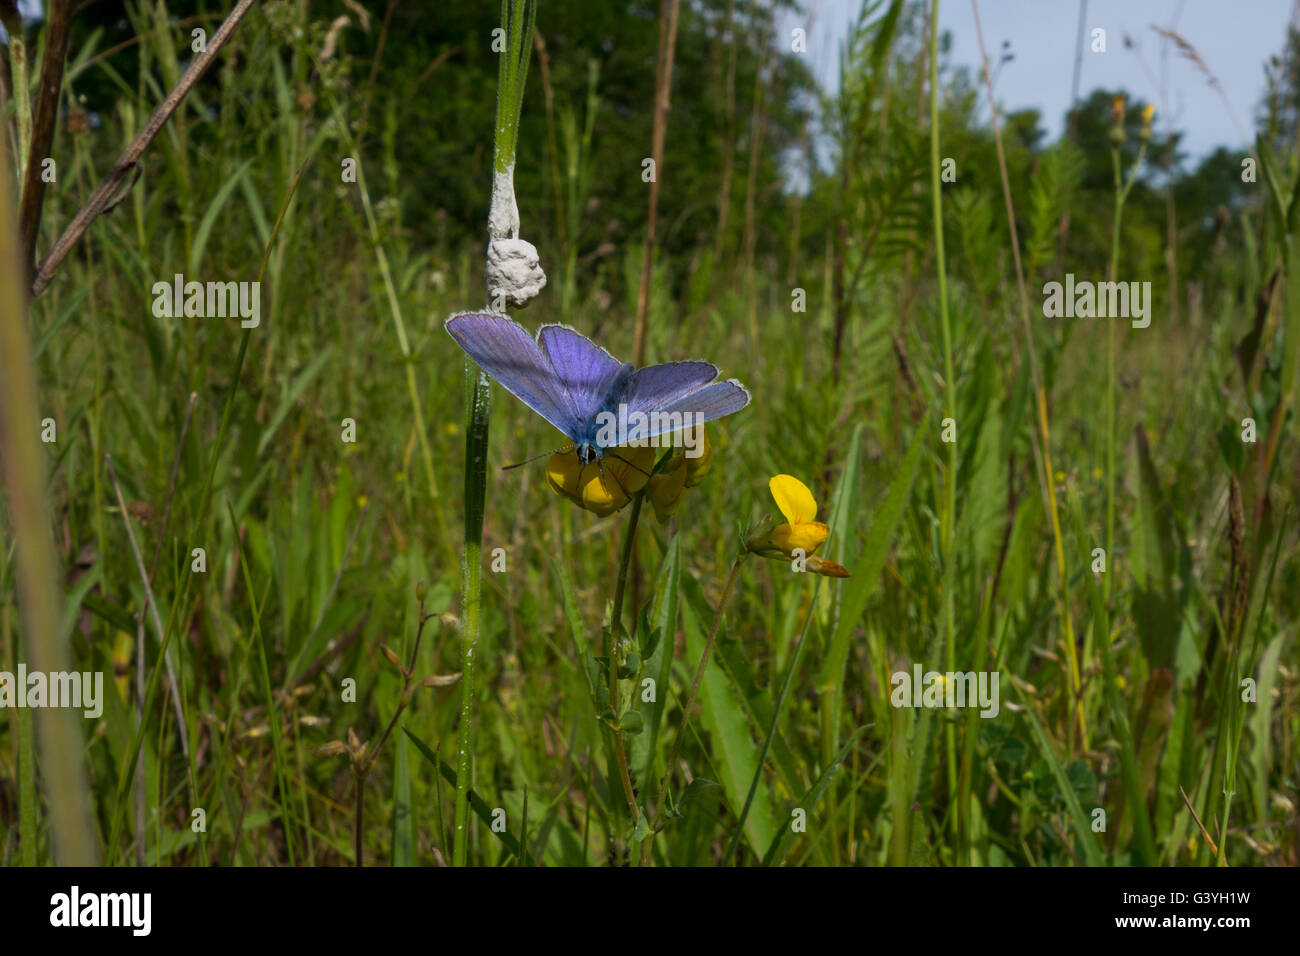 Blue - violet butterfly on yellow flower. - Stock Image